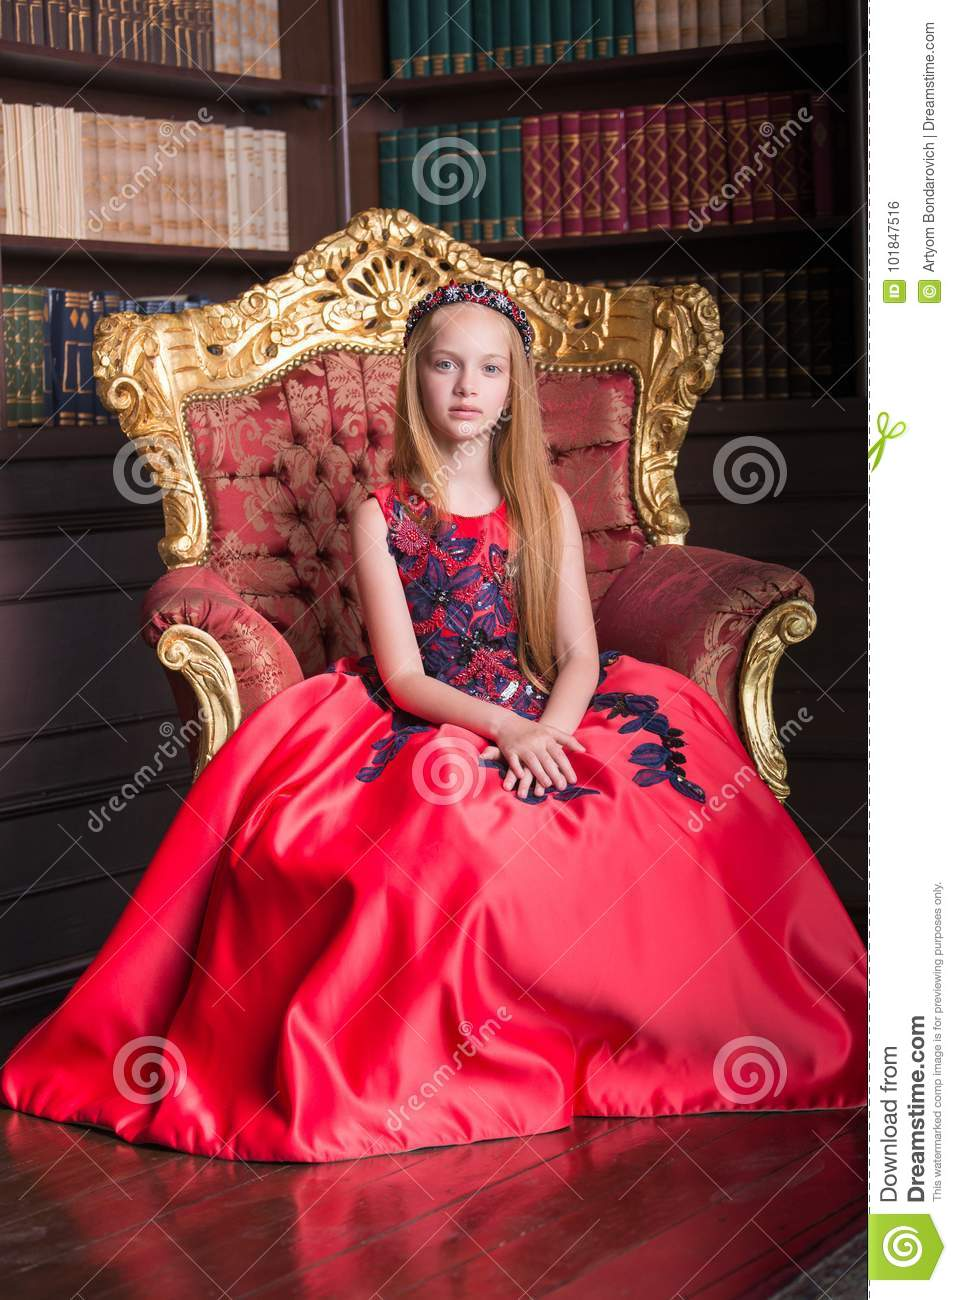 Download Cute Little Redhead Girl Wearing An Antique Princess Dress Or Costume. Stock Photo -  sc 1 st  Dreamstime.com & Cute Little Redhead Girl Wearing An Antique Princess Dress Or ...